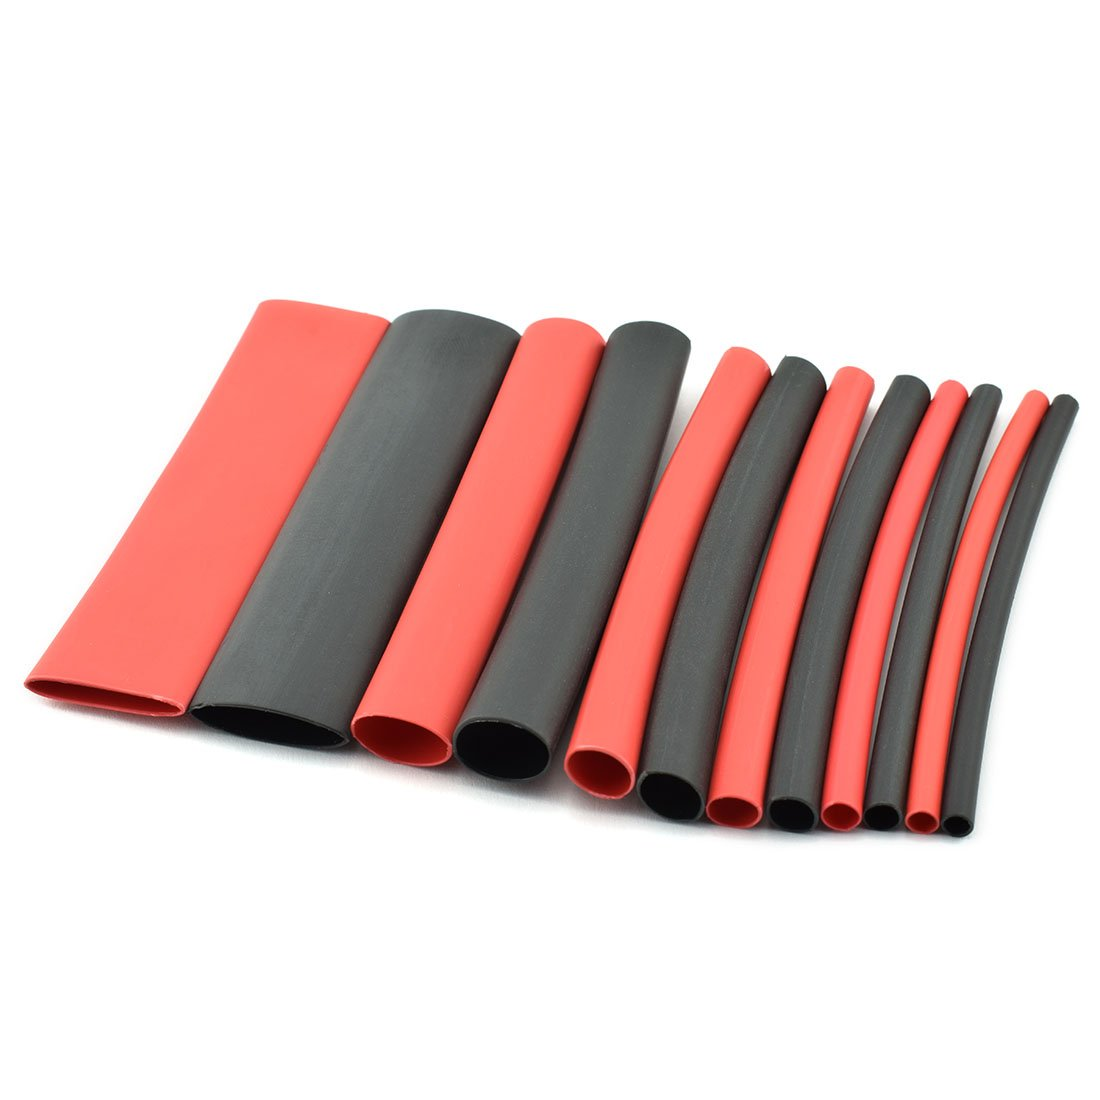 DZS Elec 88pcs 80mm 3:1 Dual Wall Adhesive Lined Heat Shrink Tubing 6 Sizes 2 Colors Waterproof Insulation Sleeving Wrap Wire Cable Assorted Kit